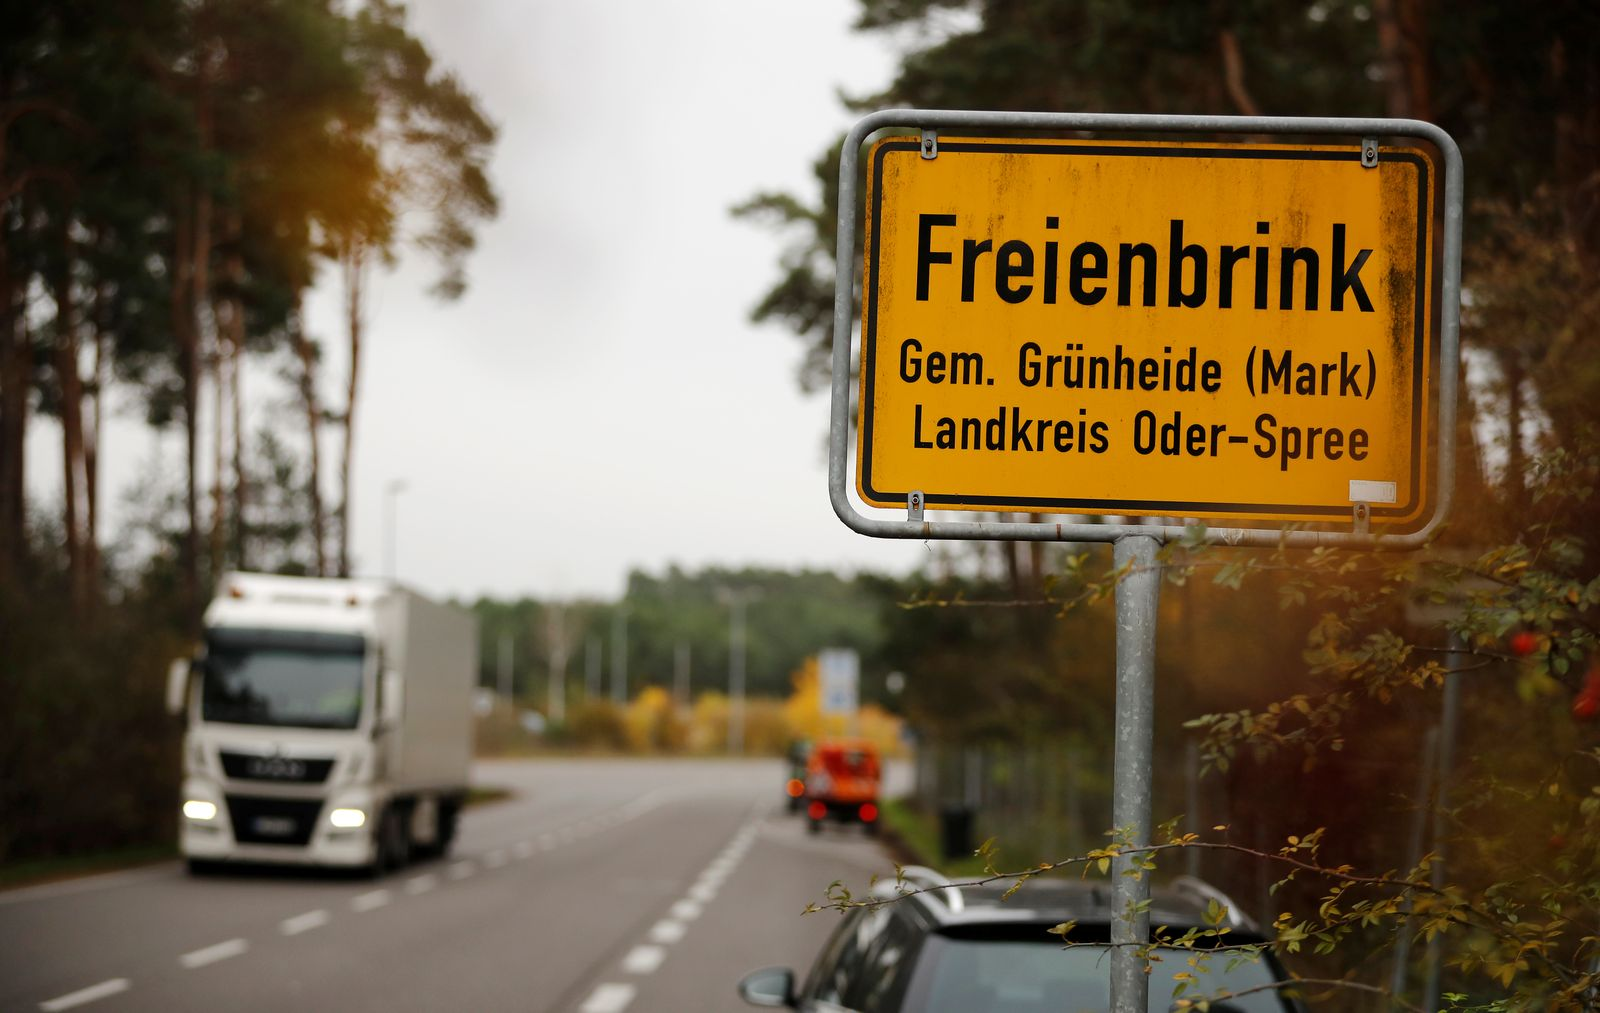 The town sign of Freienbrink district of Gruenheide is pictured near Berlin